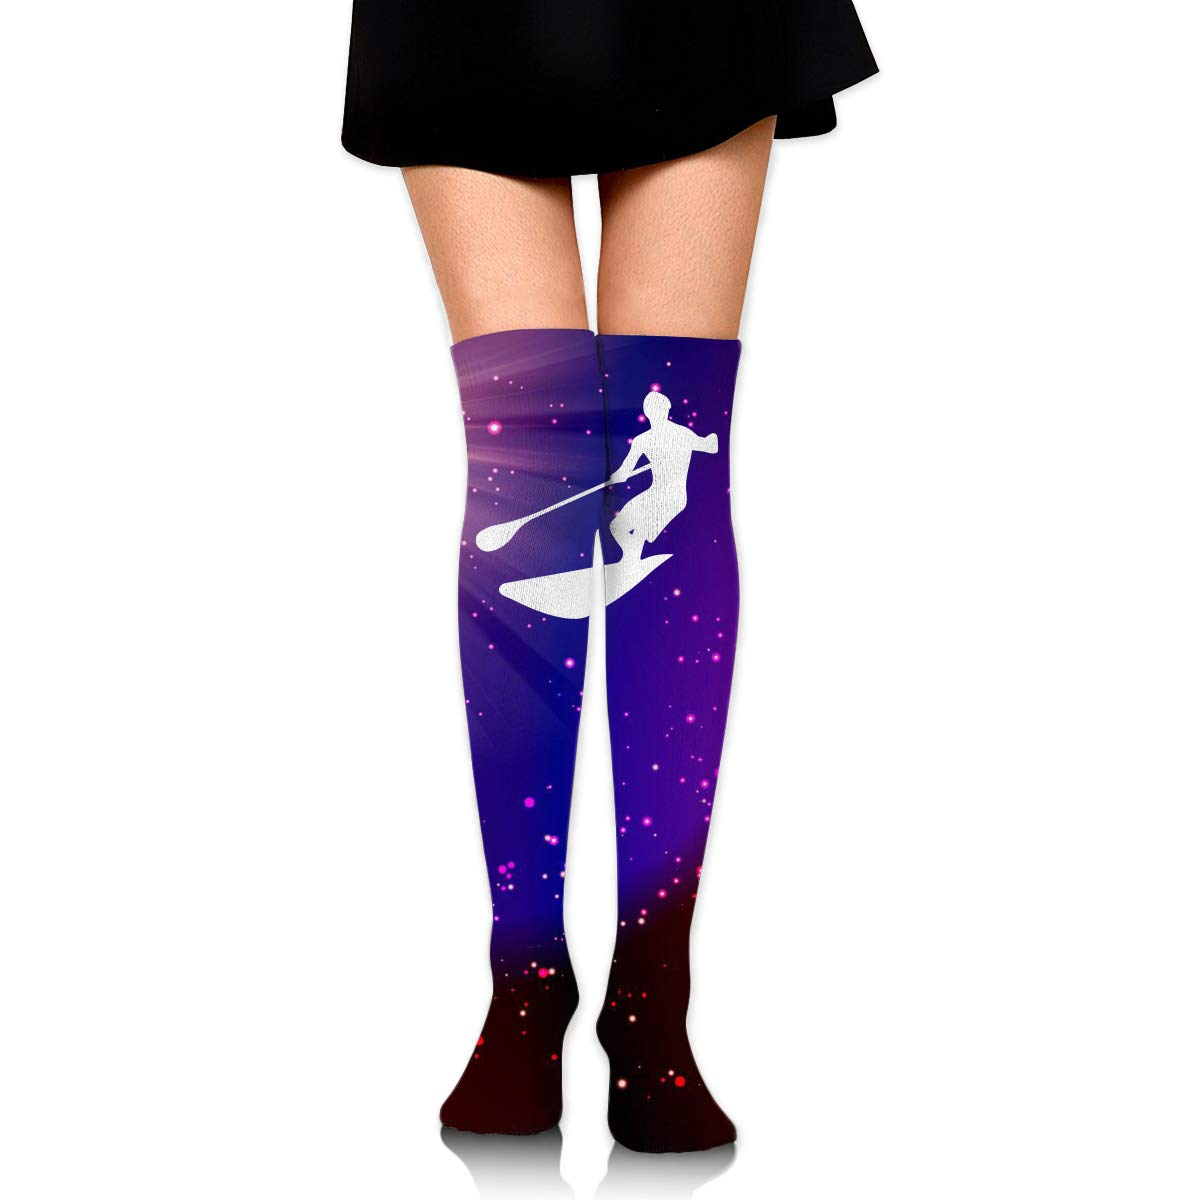 Girls Womens Paddleboard Sports Over Knee Thigh High Stockings Cute Socks One Size